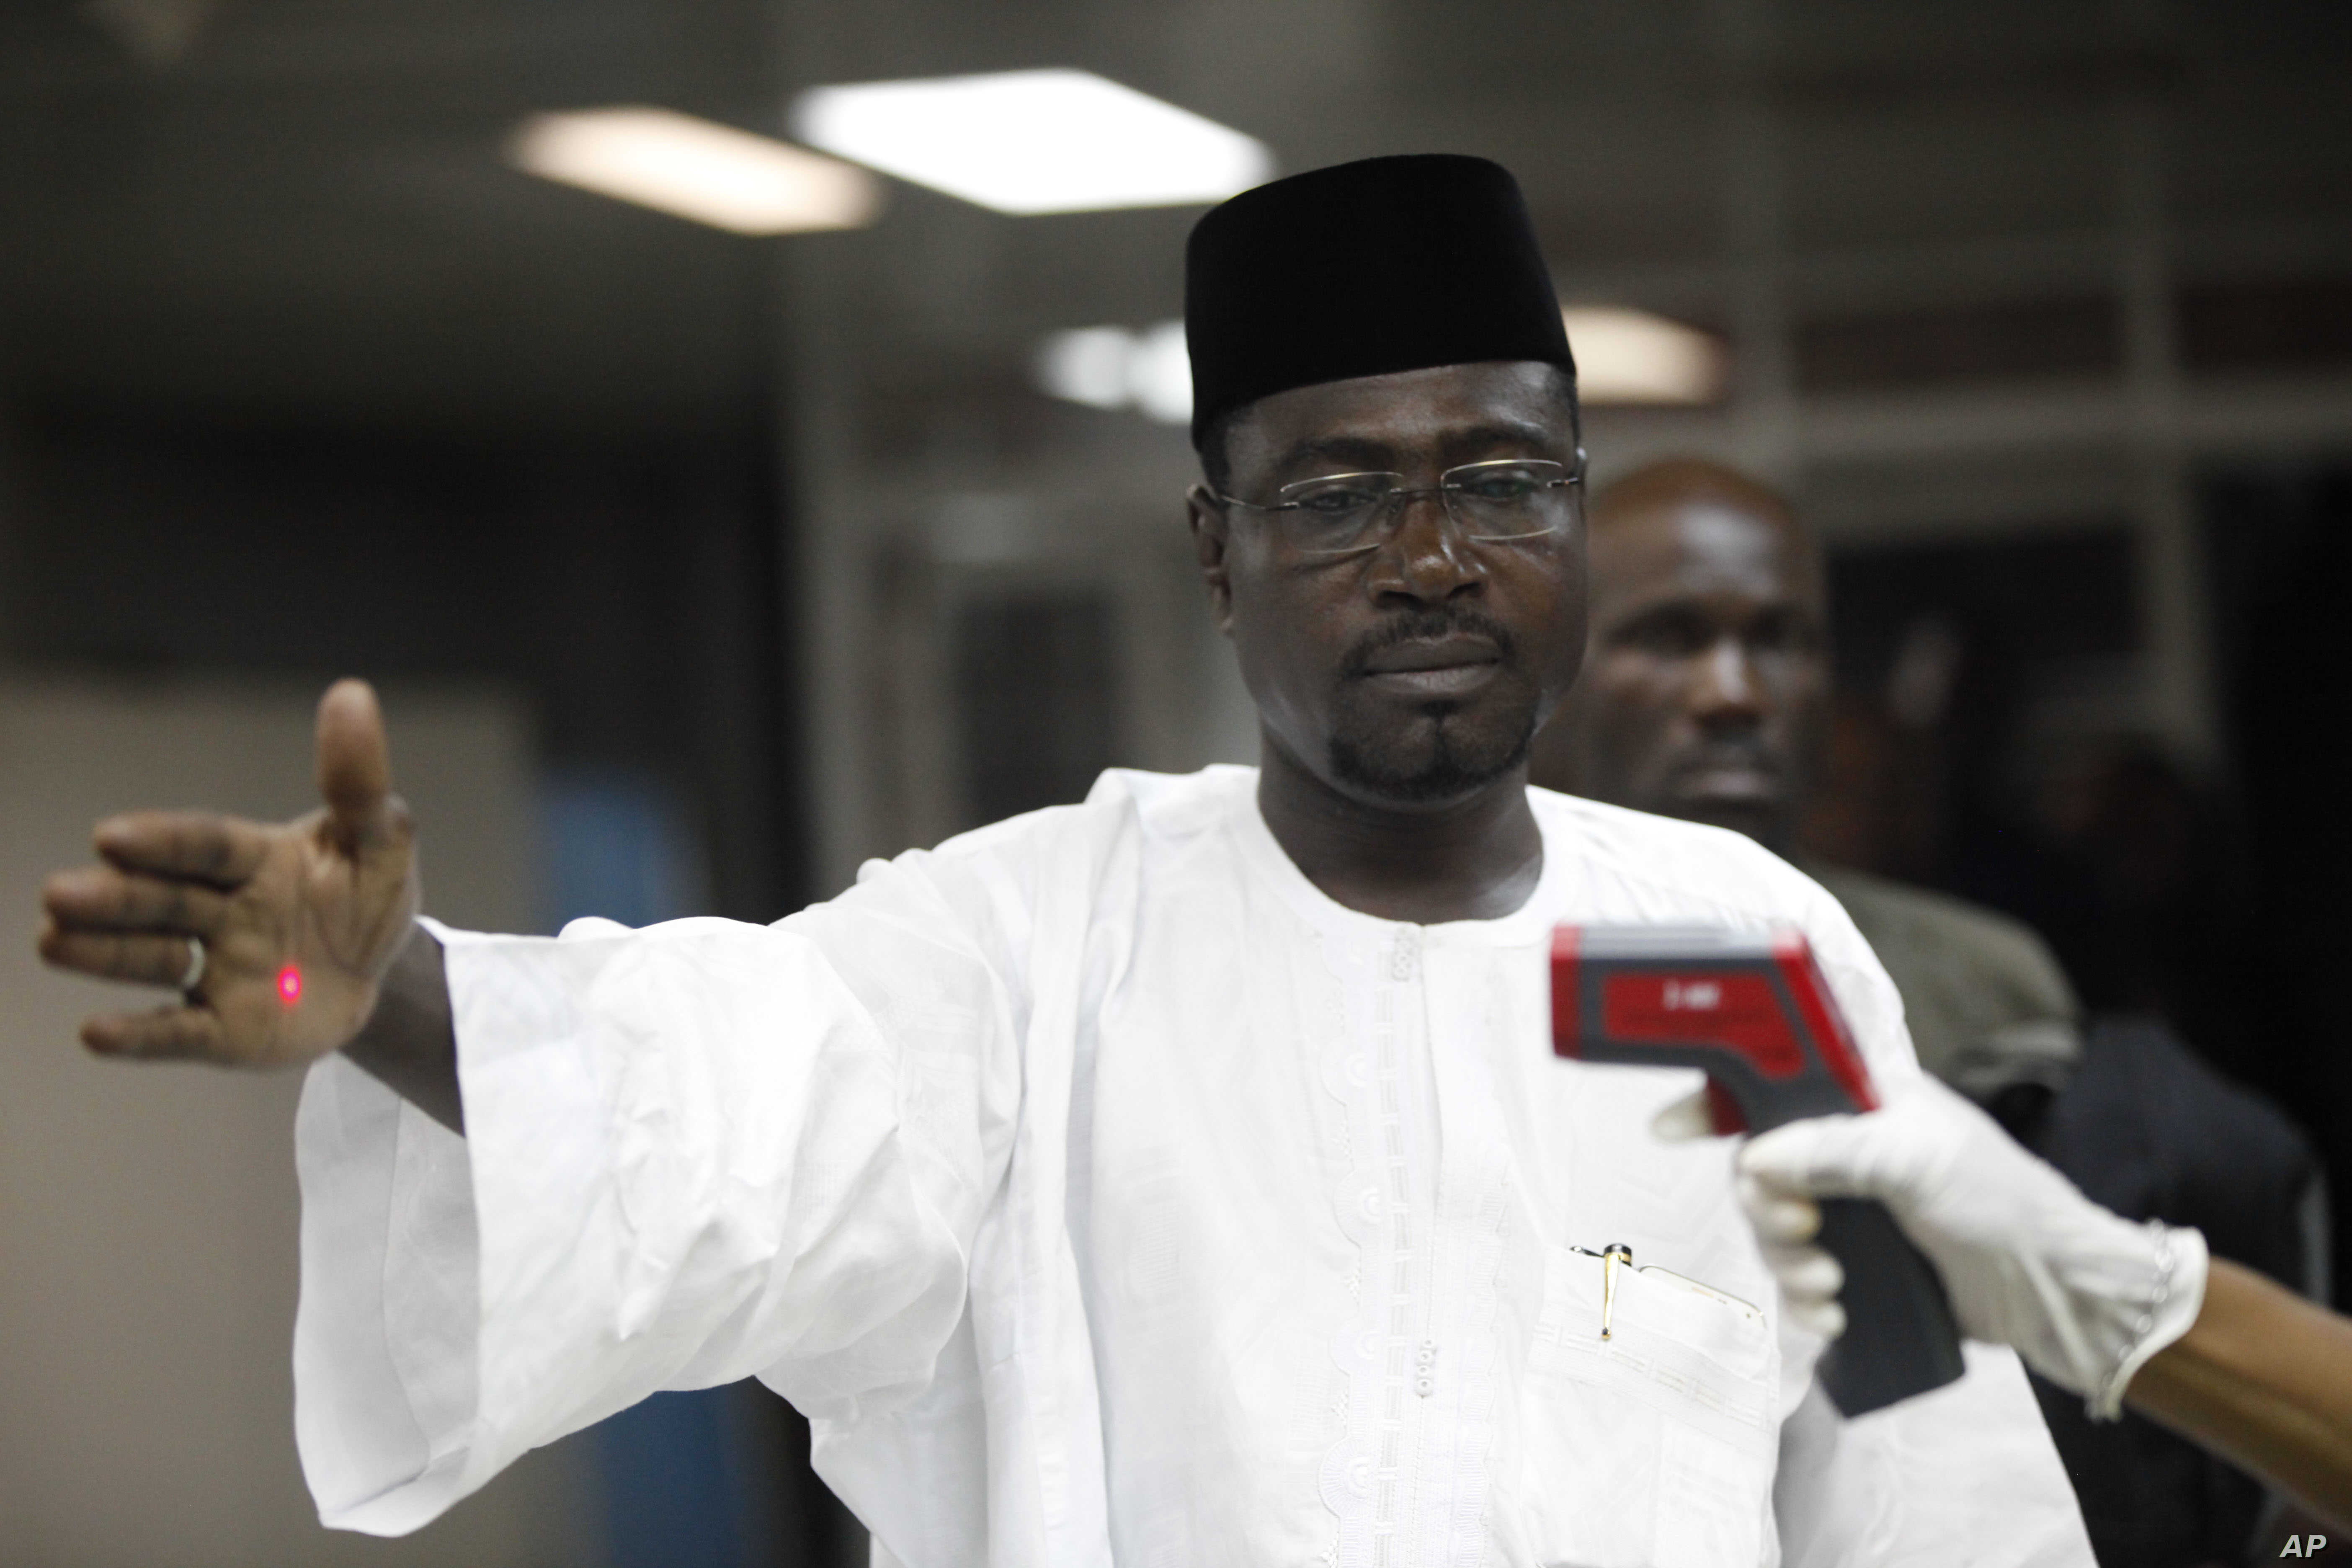 Nigerians Hope to Complete Hajj Amid Ebola Outbreak | Voice of